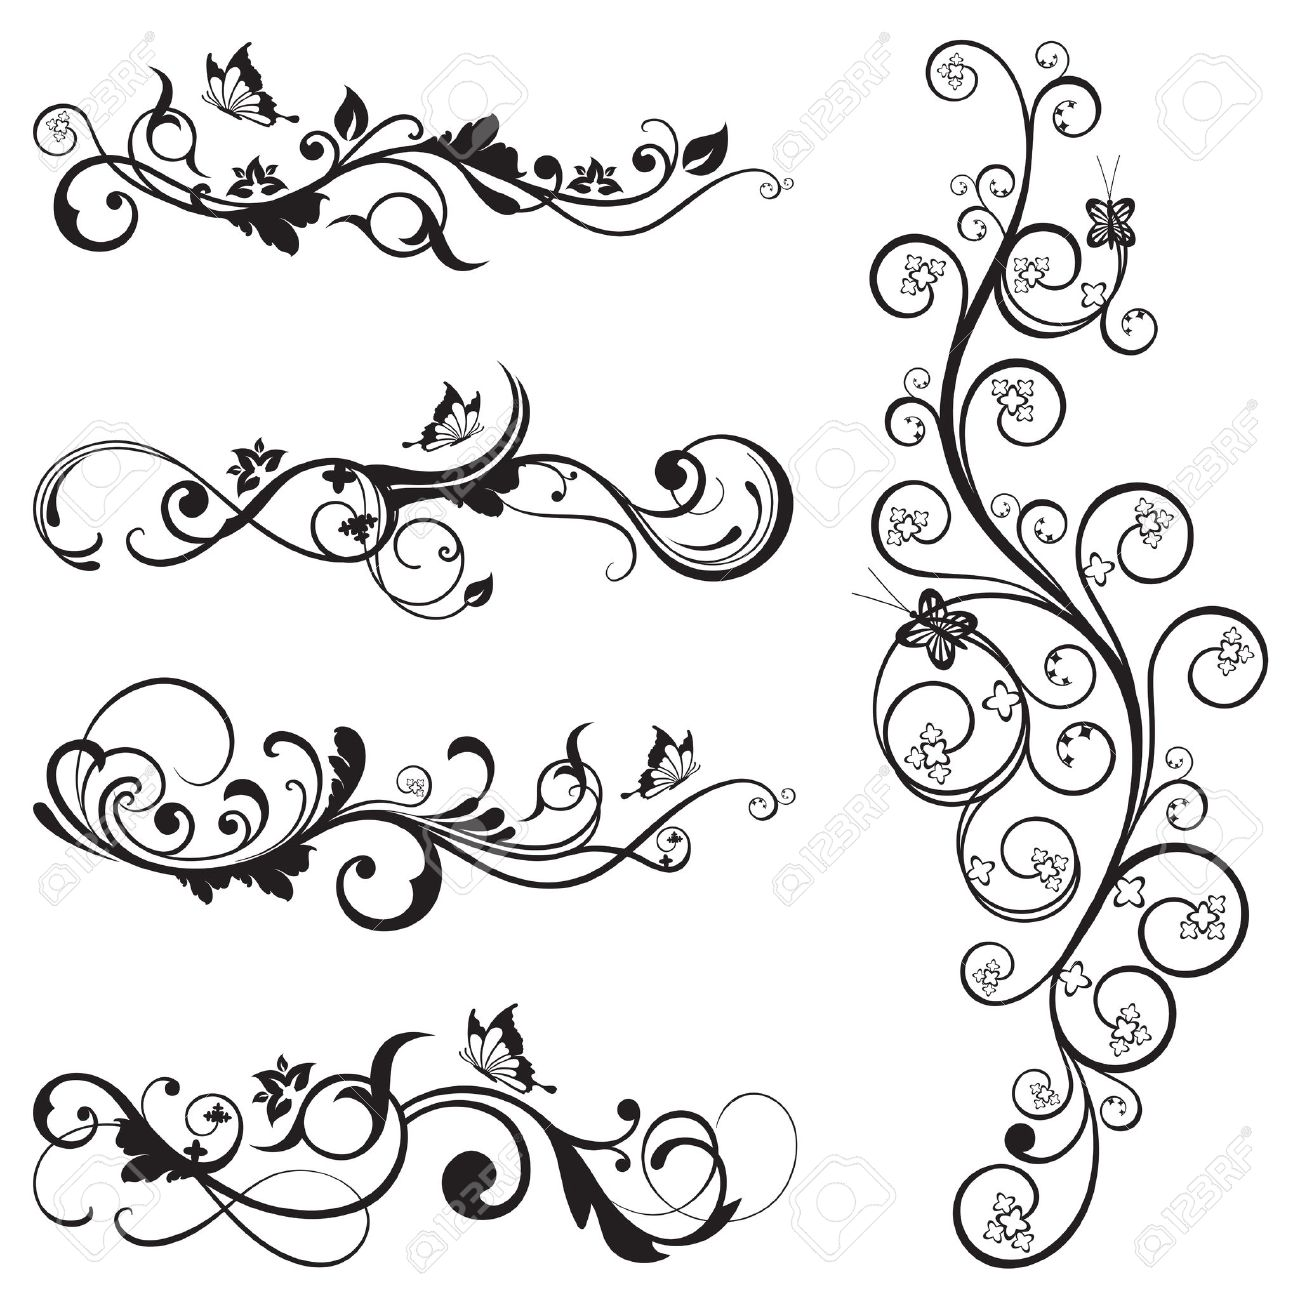 Collection of vintage floral silhouette designs with butterflies and swirls Stock Vector - 20277138